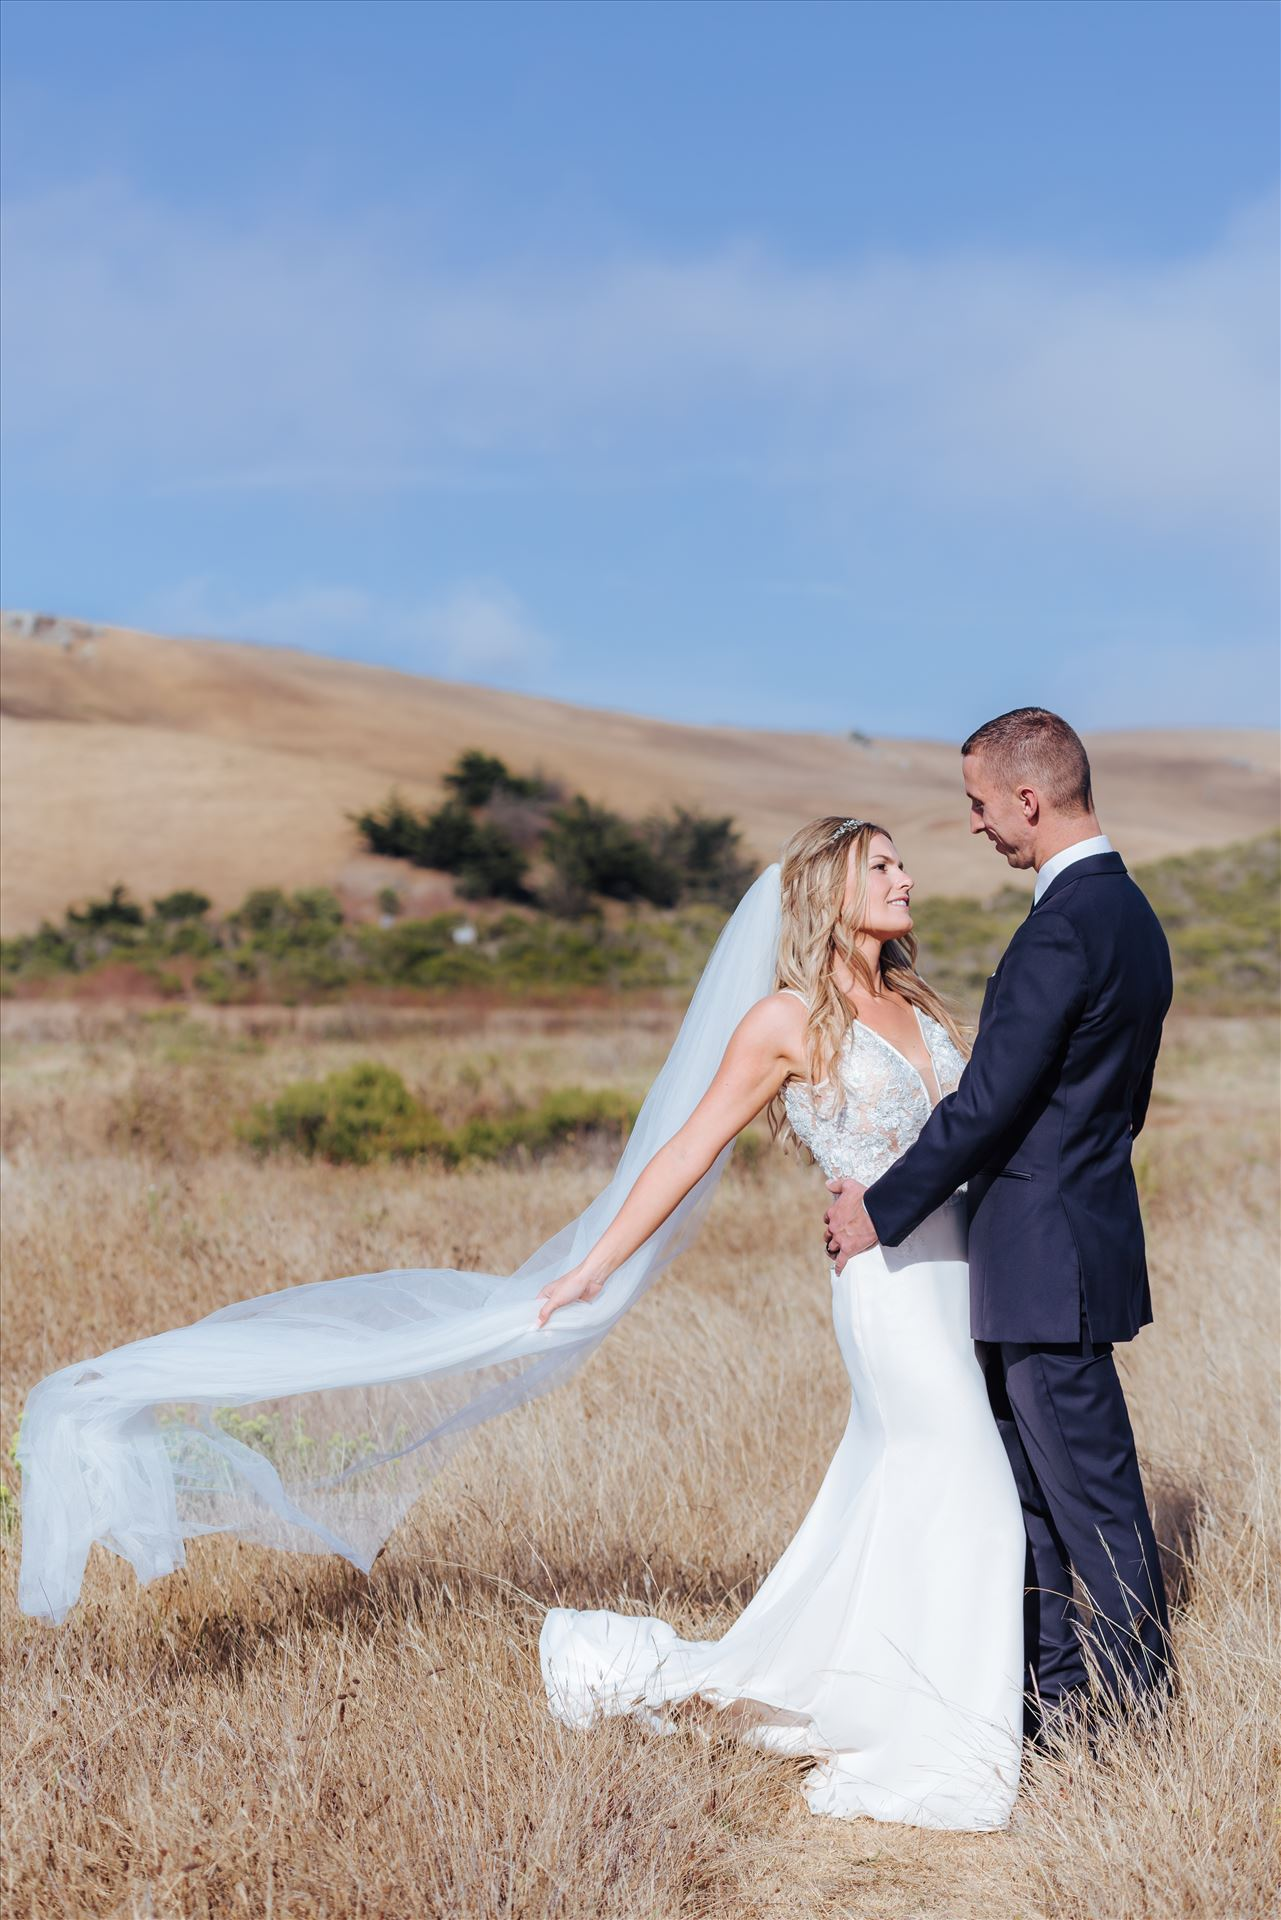 FW-0776.JPGCayucos California Beach and Bluffs Wedding near Morro Bay and Cambria with romantic chic flair by Mirror's Edge Photography, San Luis Obispo County Wedding Photographer.  Bride and Groom on the bluffs overlooking the ocean with veil flowing in the wind.